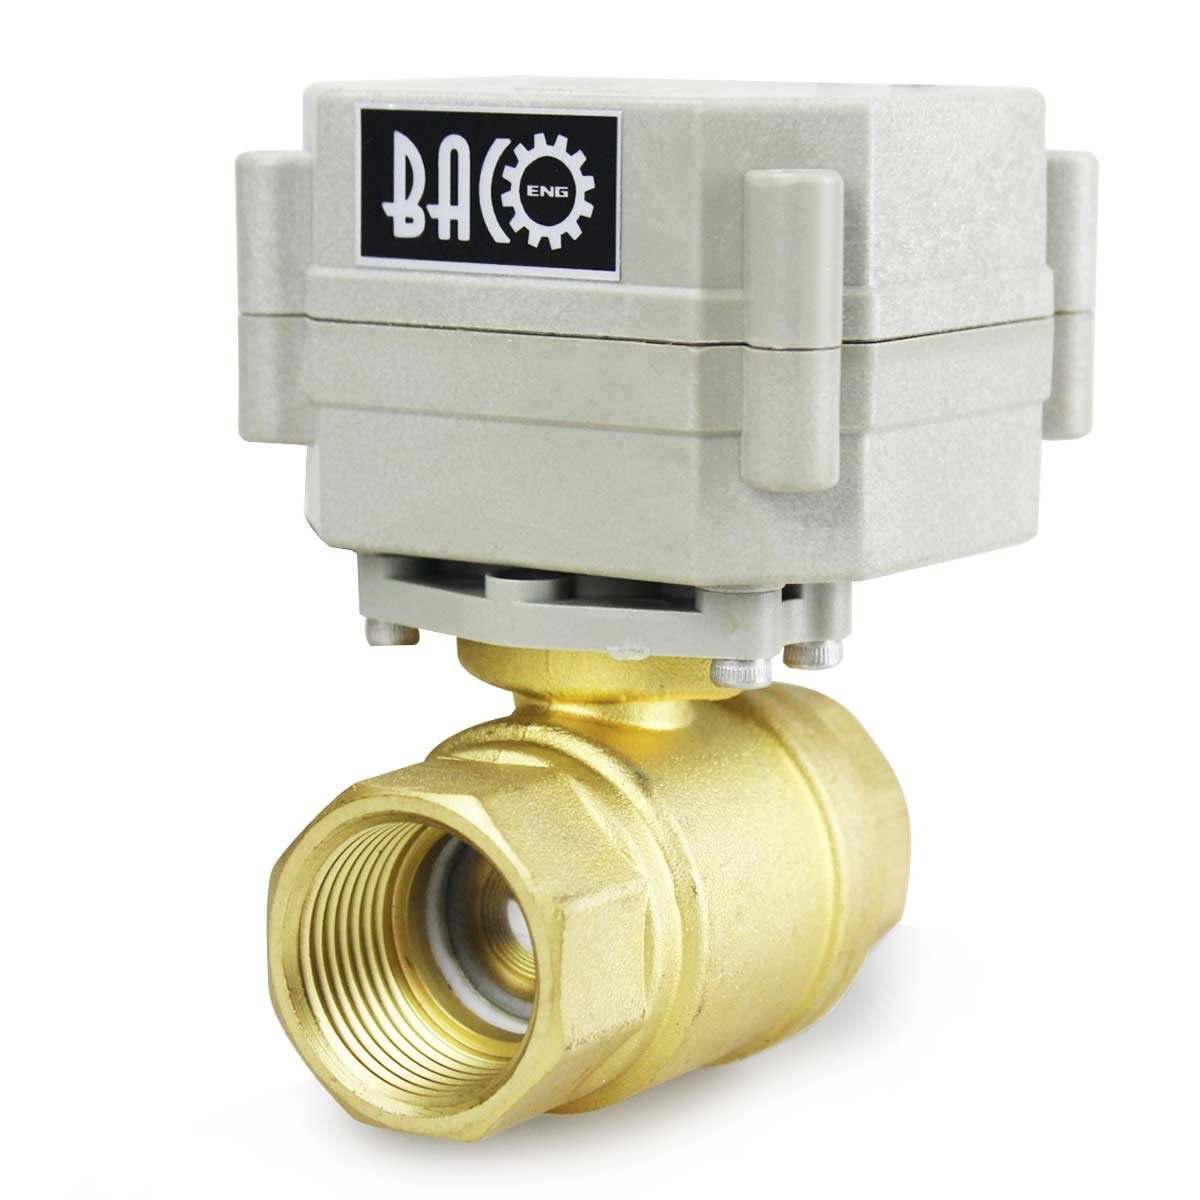 Baco Engineering 3//4 DC12V NPT Stainless Steel NC Electric Solenoid Valve